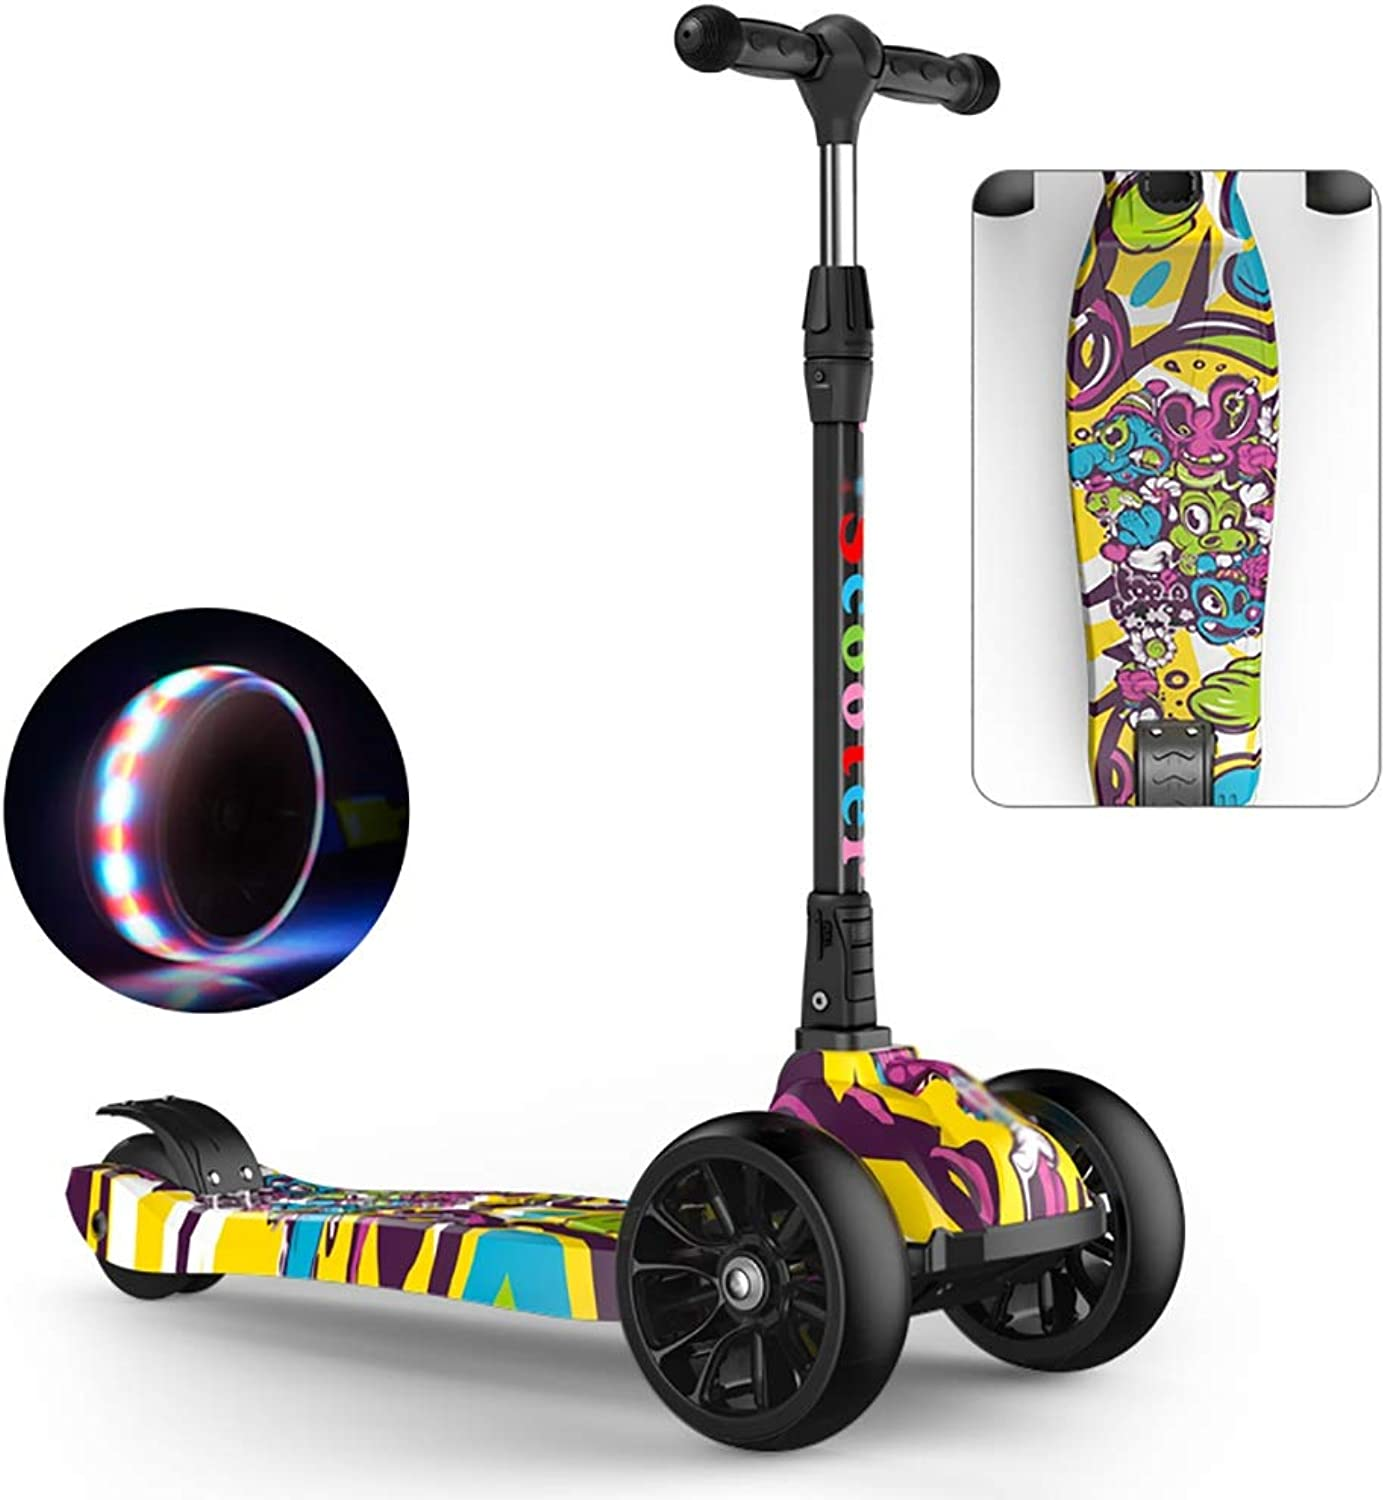 Kick Scooters for Kids Ages 3-12, Scooter Board with Handles, Easy to Fold and Carry, Adjustable Handle Bar, Wide Deck, Flashing Wheels (color   C, Size   68cm × 27cm × 85cm)